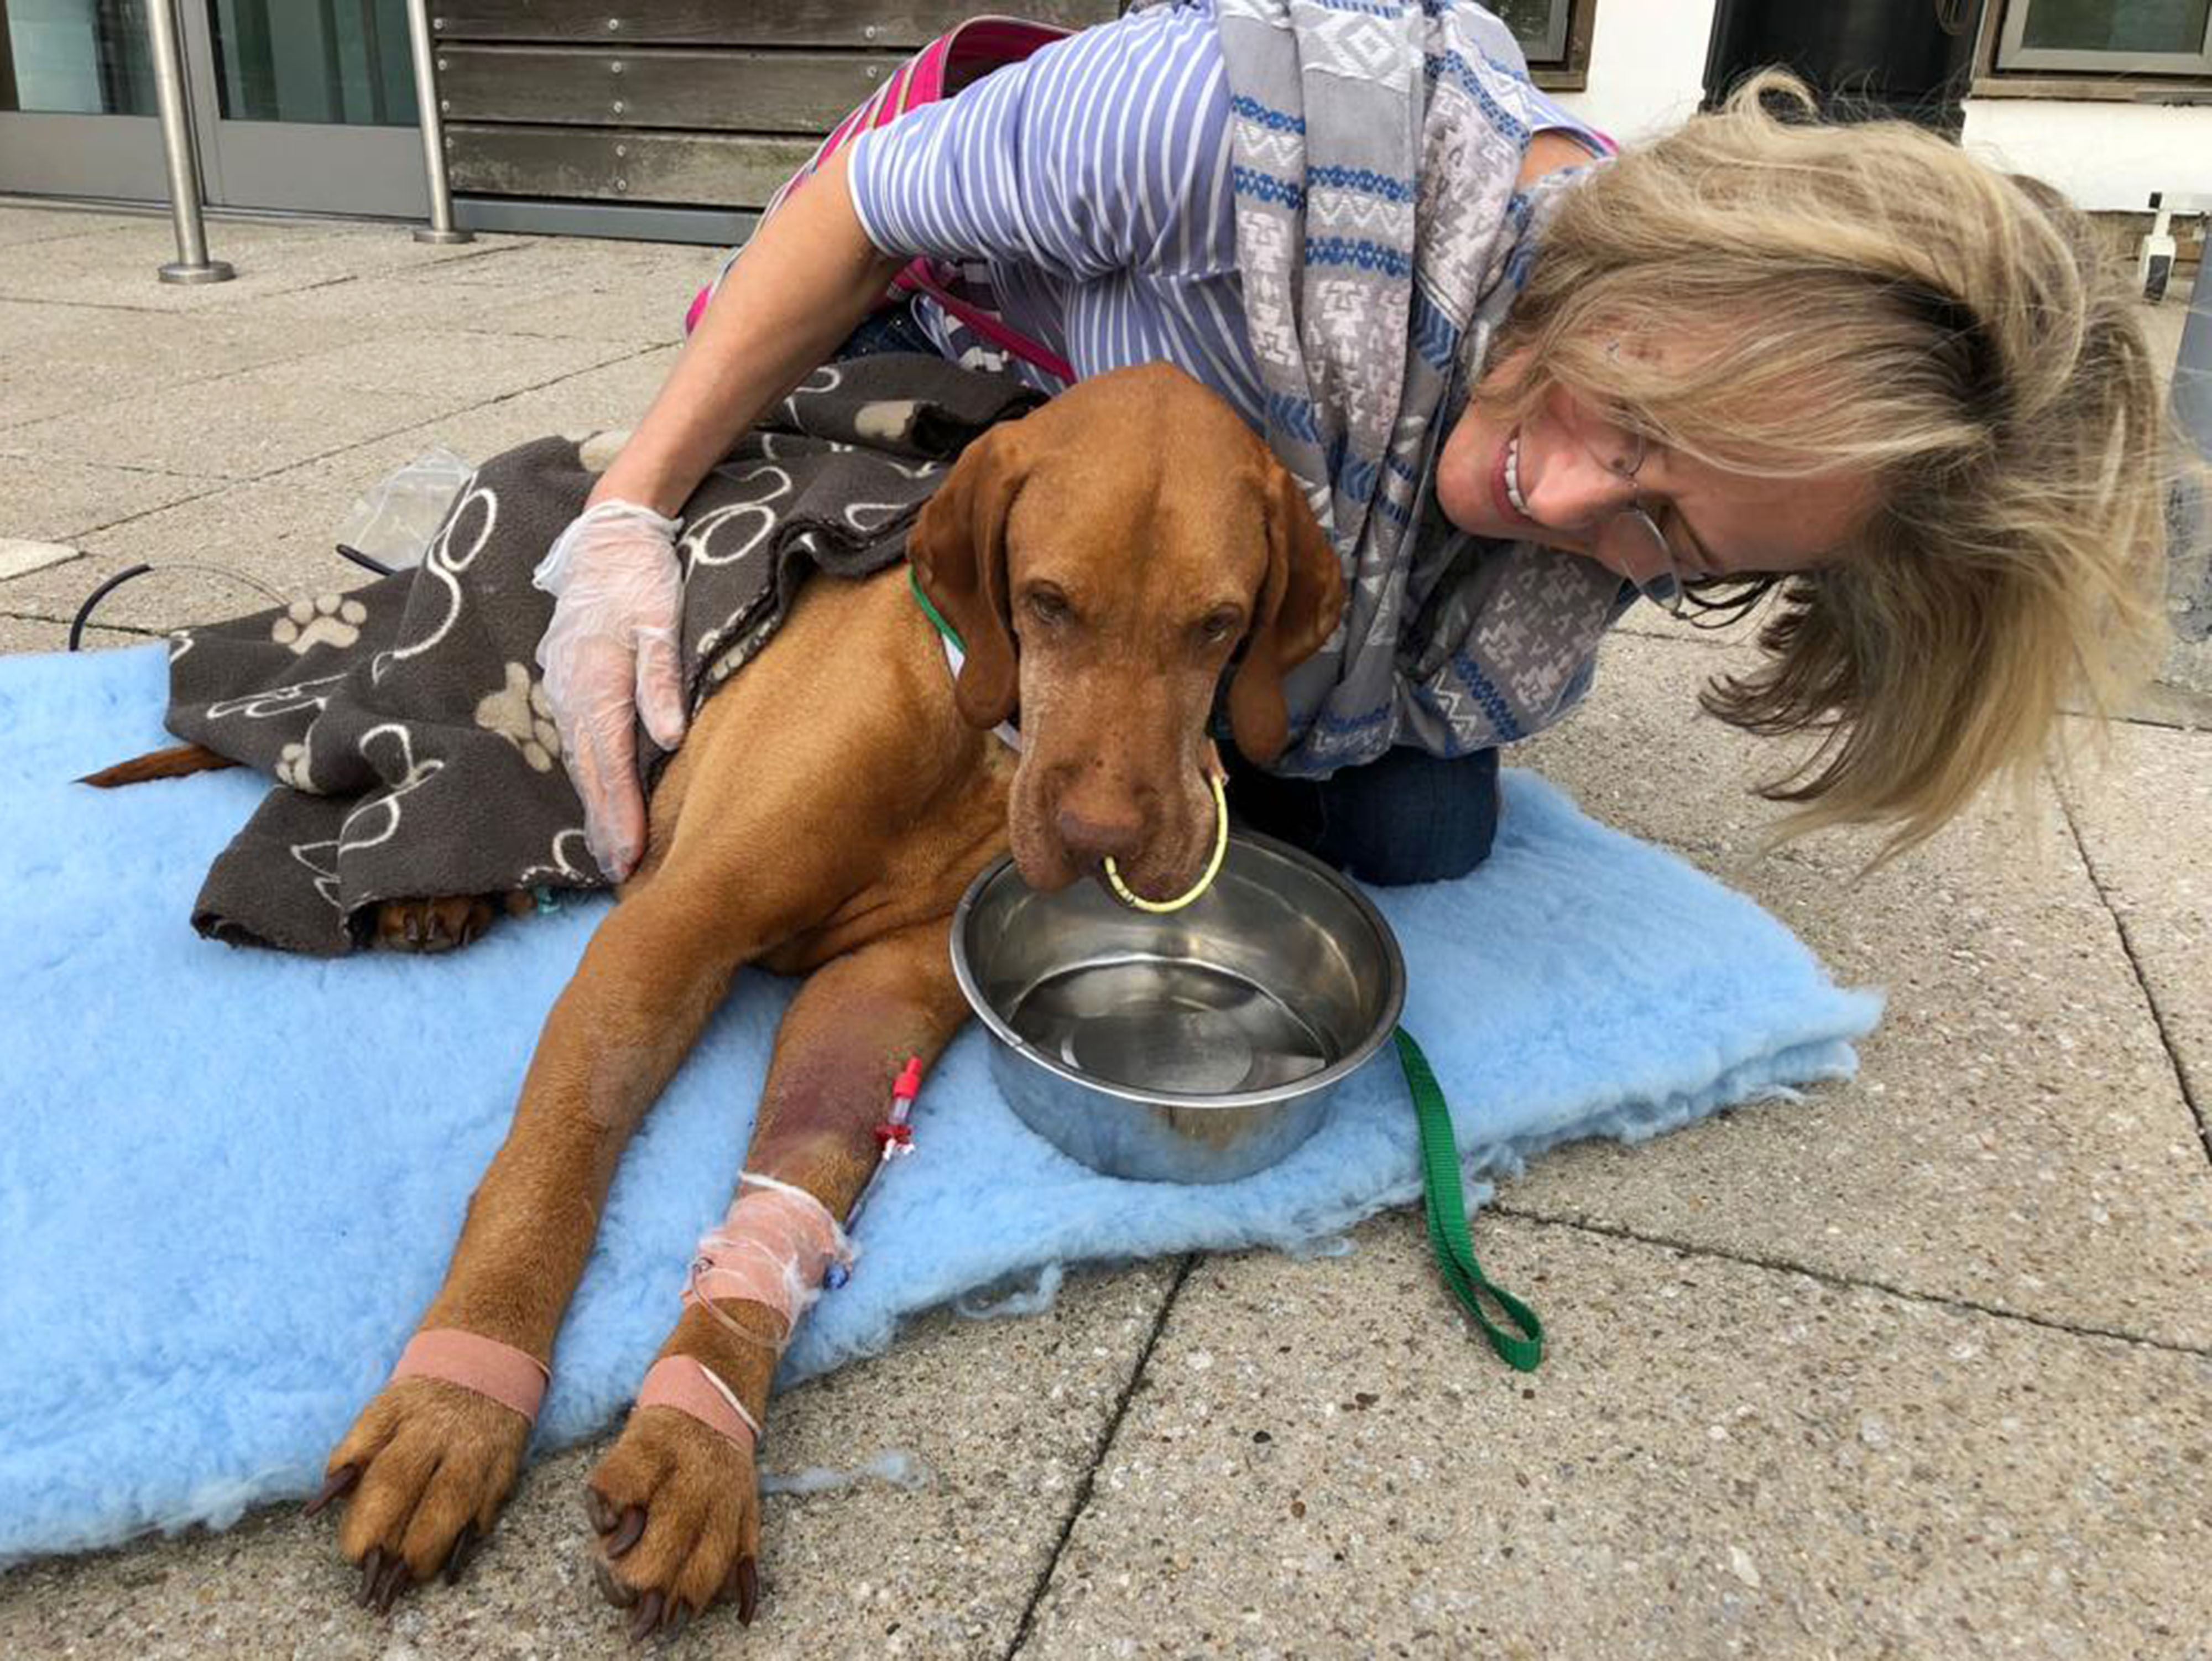 Ruby's owners spent £10,000 trying to save her. Credit: Caters